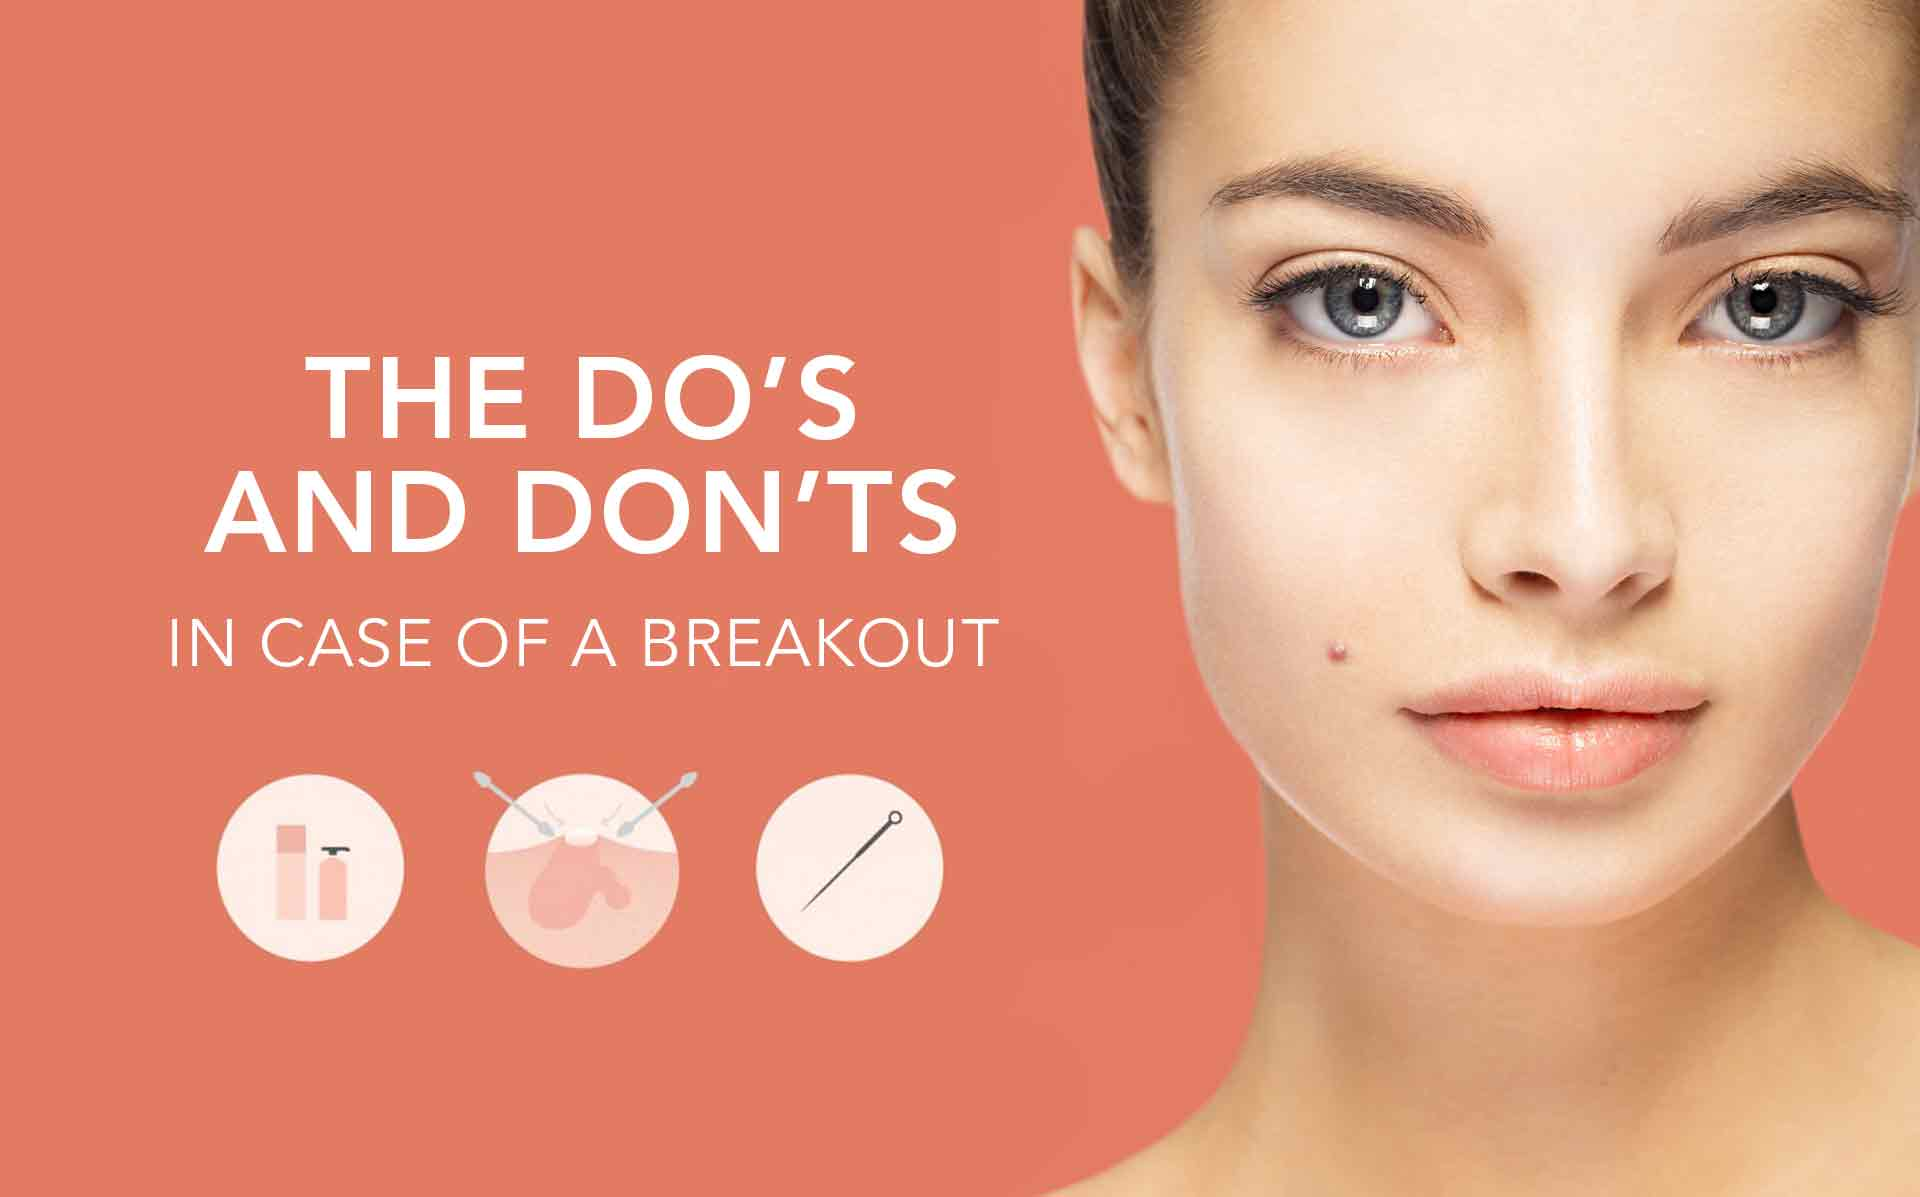 Popping Zits: A How to Guide of Do's and Don'ts When Popping a Pimple